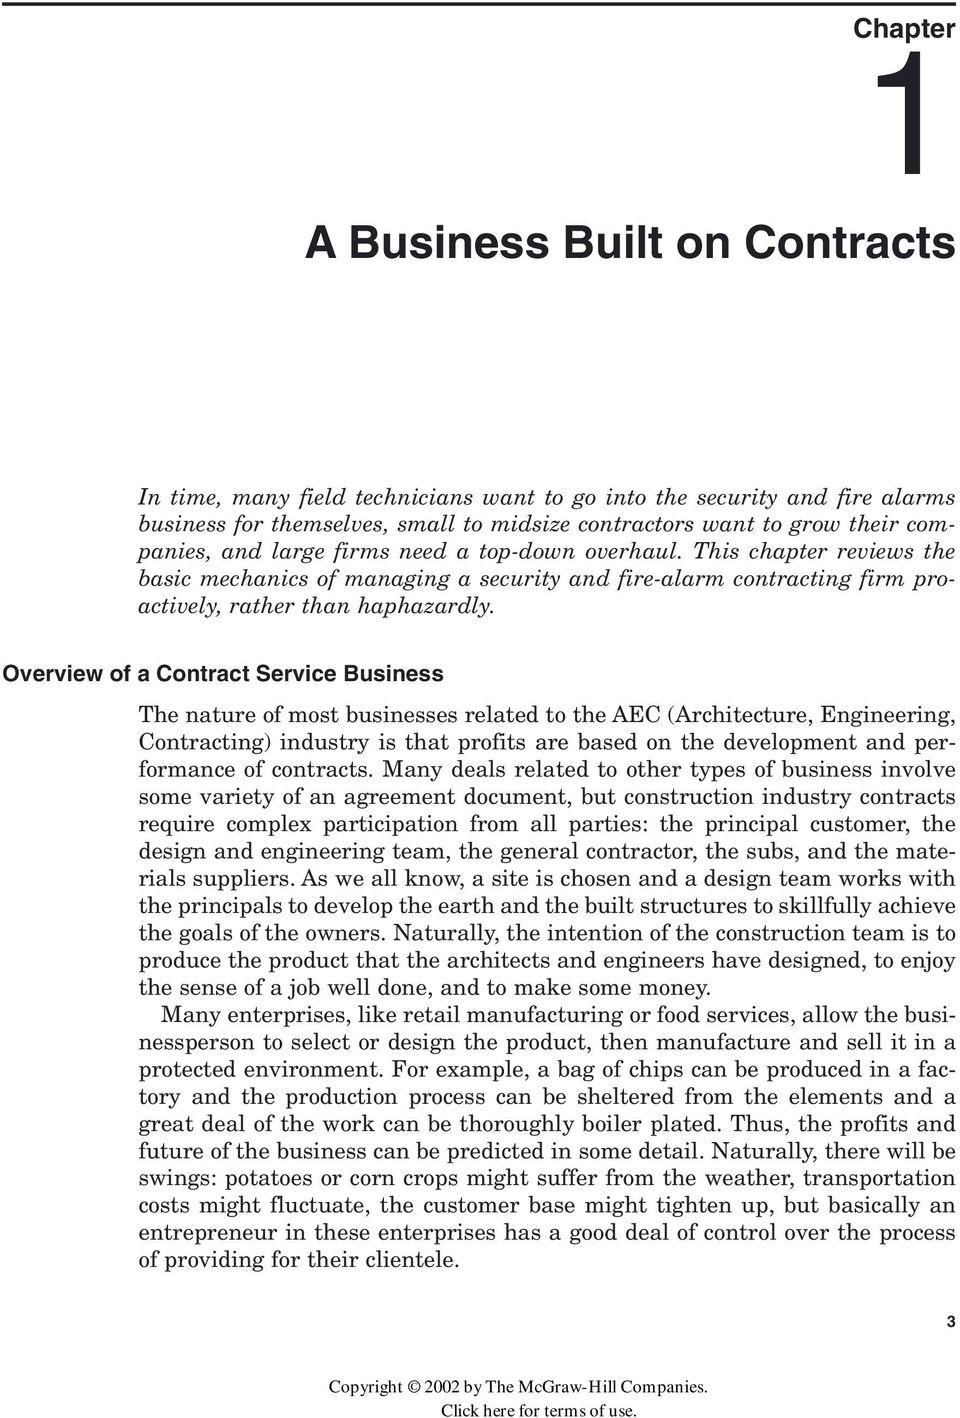 Overview of a Contract Service Business The nature of most businesses related to the AEC (Architecture, Engineering, Contracting) industry is that profits are based on the development and performance